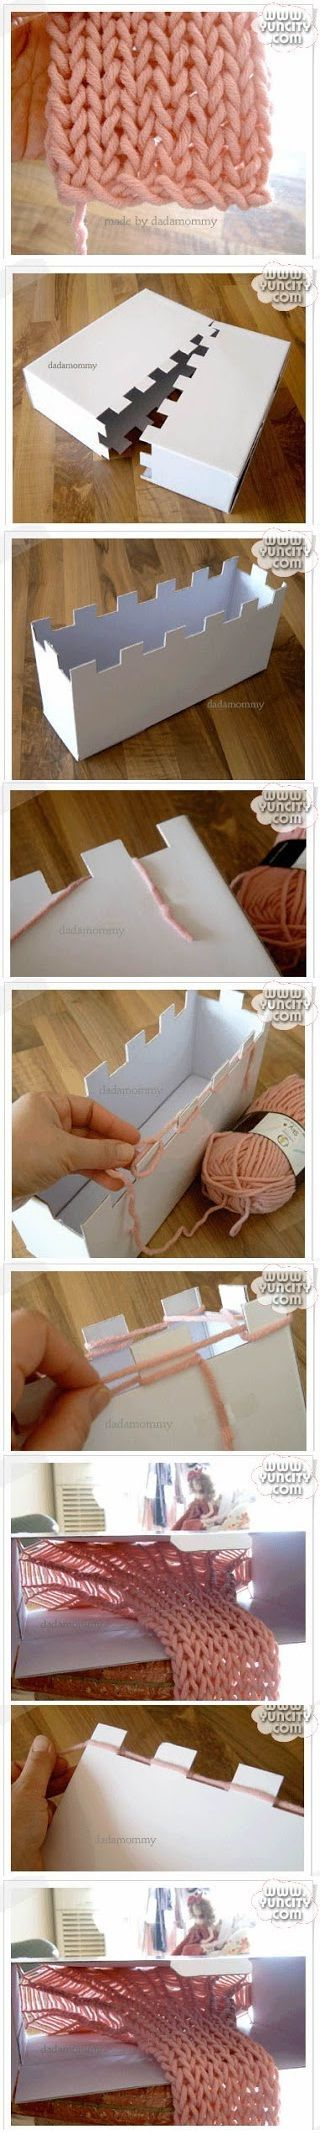 Circular knitting without needles! | Ideas